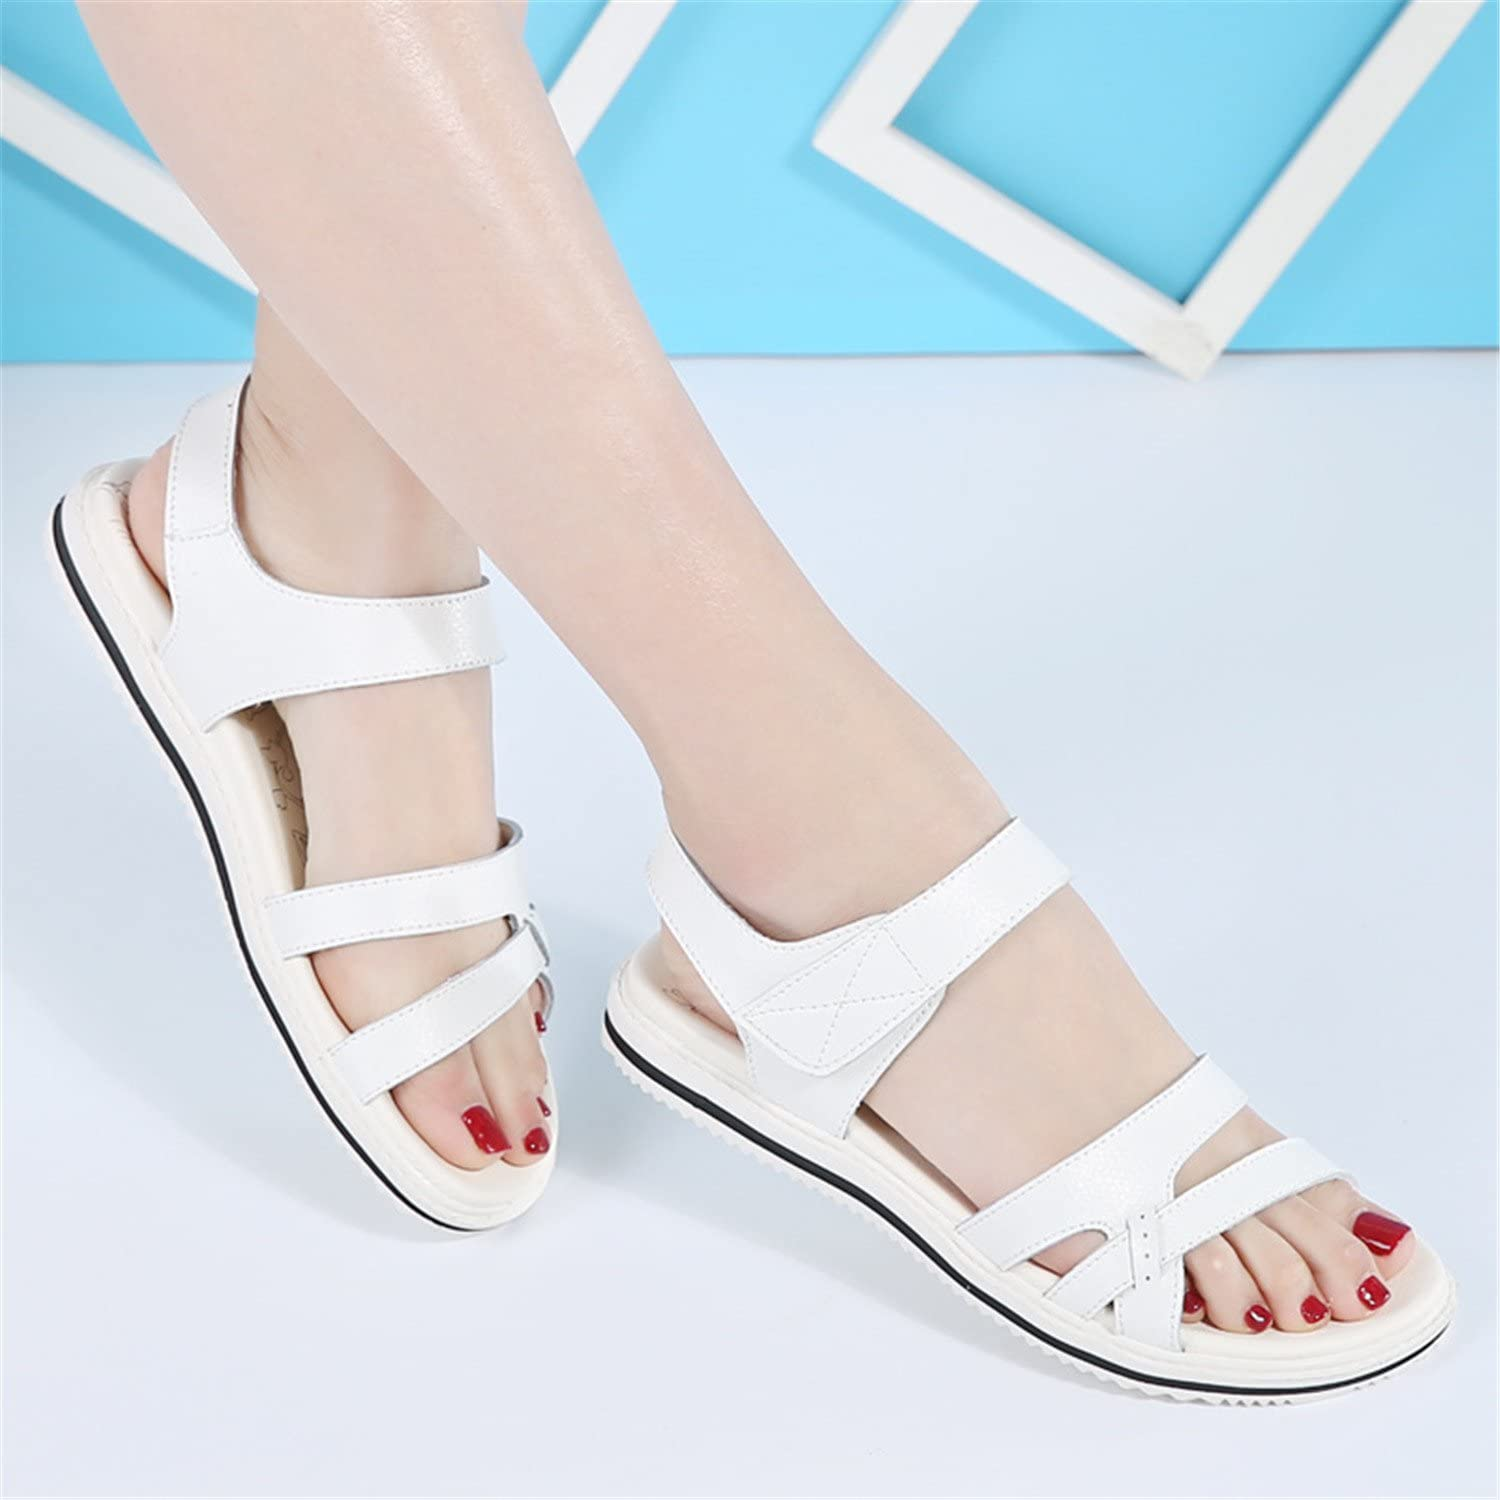 Henraly Pregnant Women Sandals Women Non-Slip Flat New Summer New Leather Soft Sandals Female Students with Casual shoes